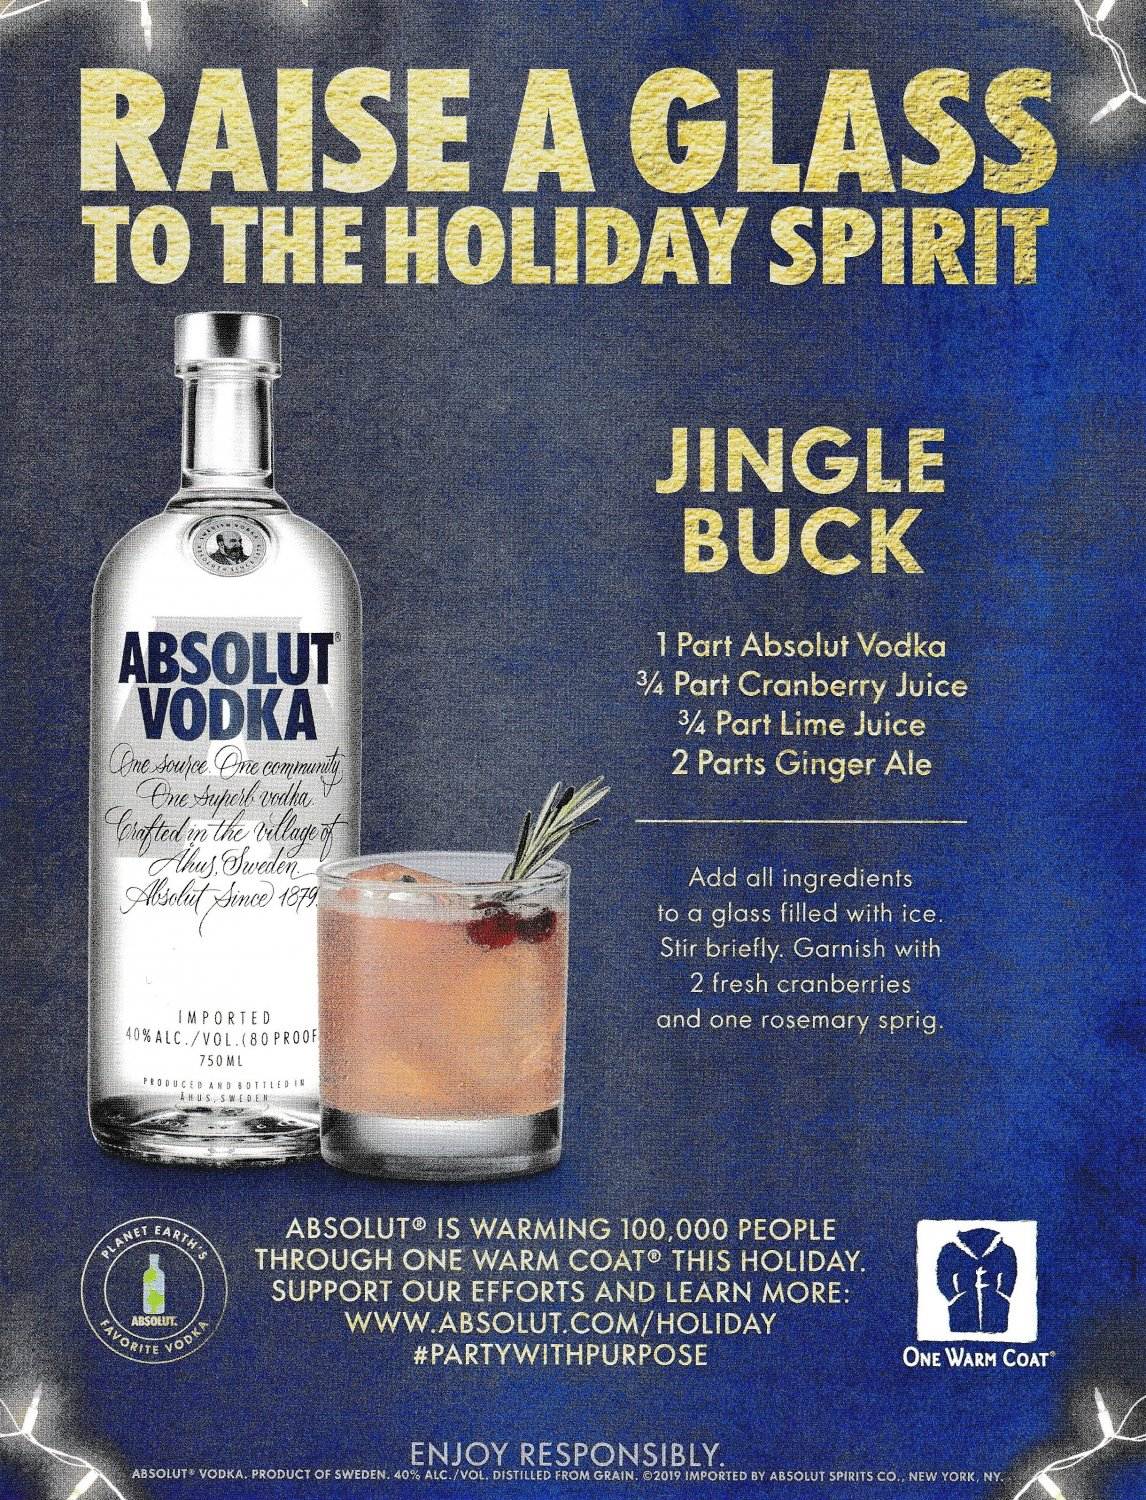 RAISE A GLASS TO THE HOLIDAY SPIRIT Absolut Vodka Magazine Ad w/ Jingle Buck Cocktail Recipe